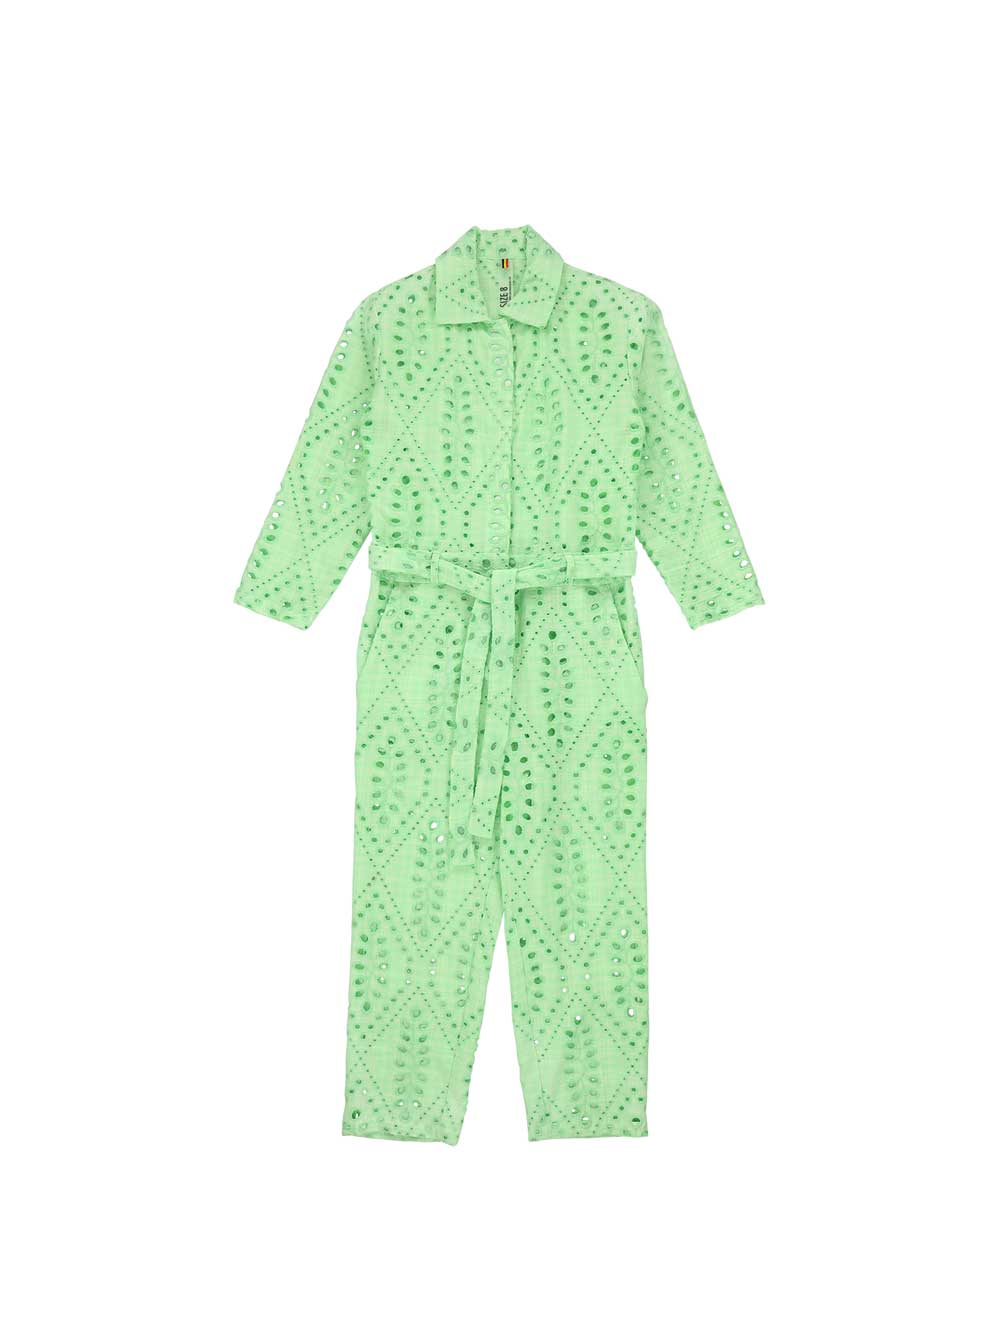 Green Eyelet Overall